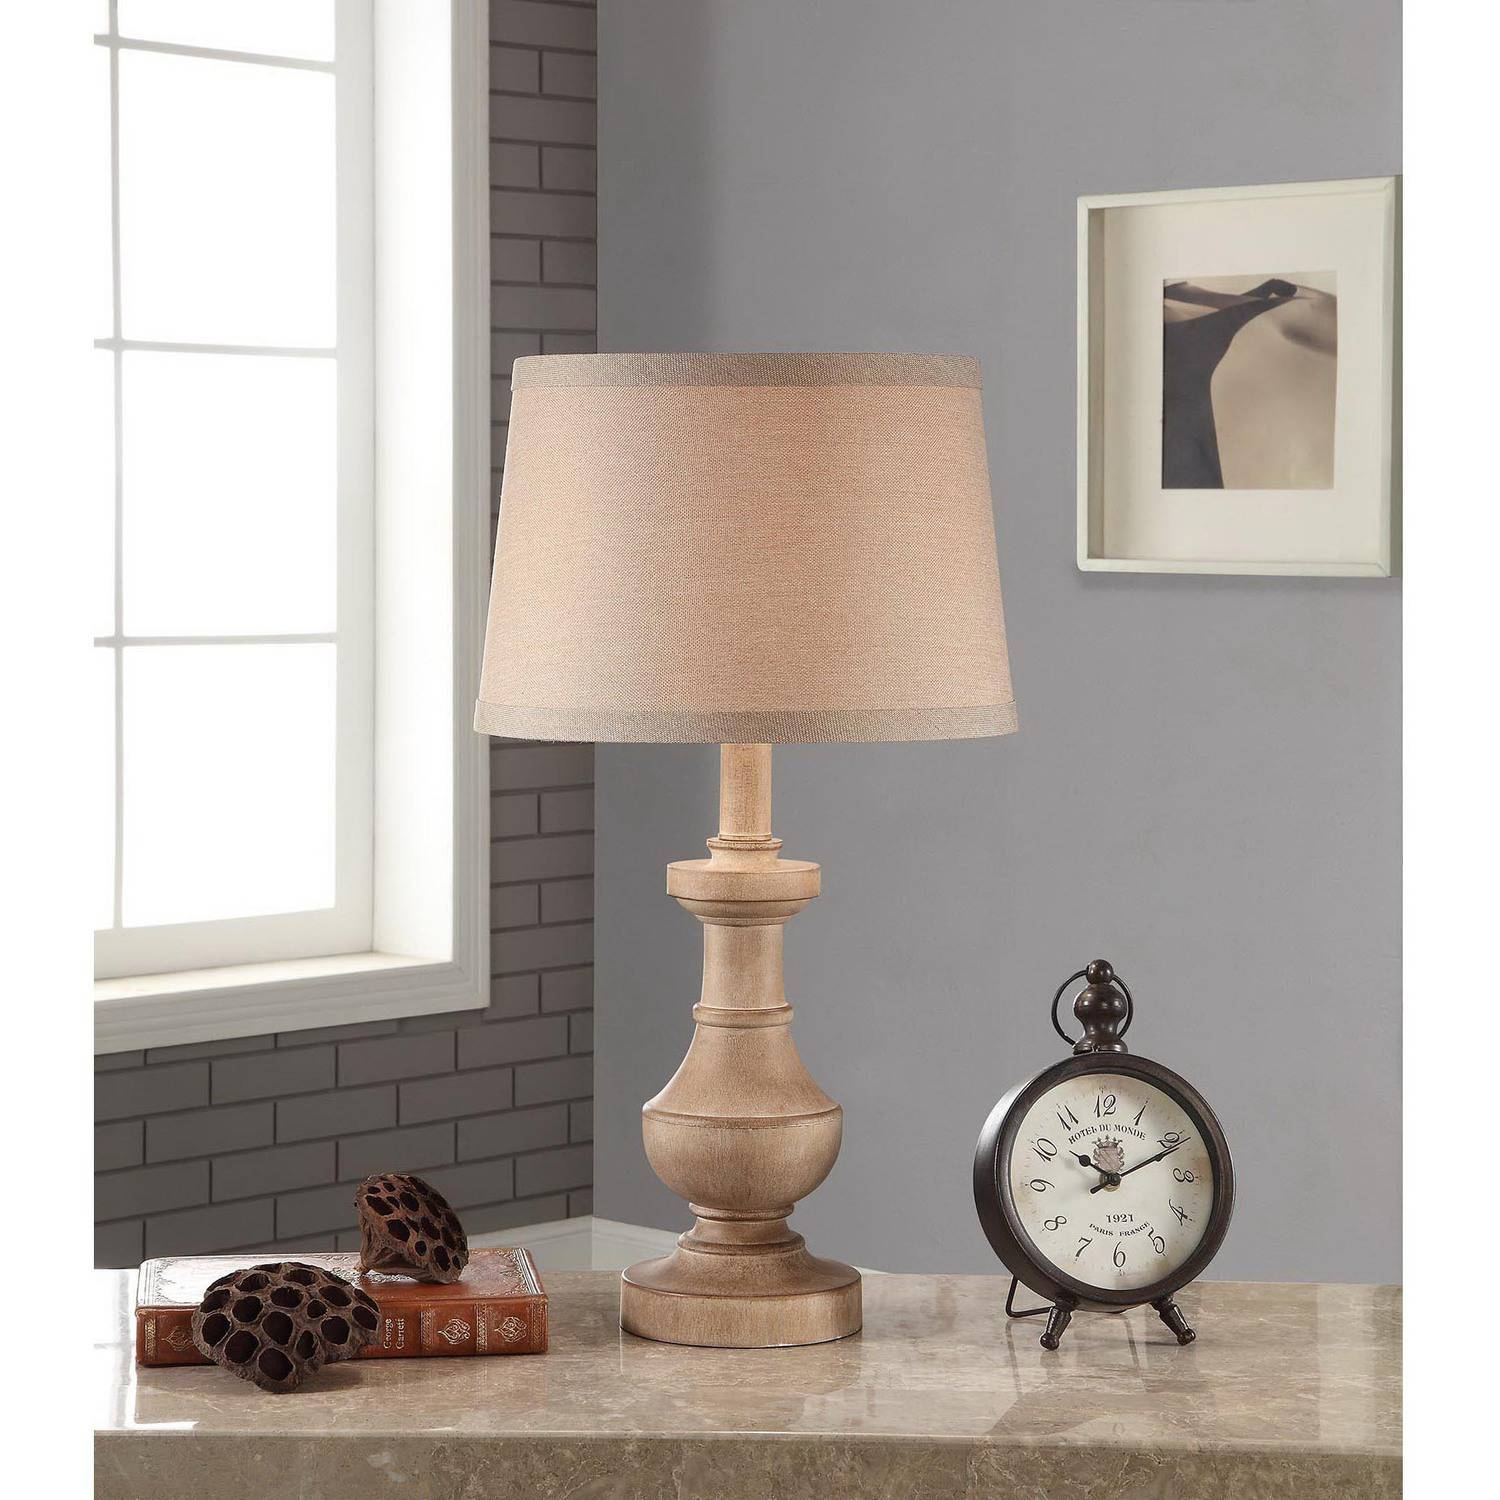 Better Homes And Gardens Rustic Floor Lamp, Distressed Wood   Walmart.com